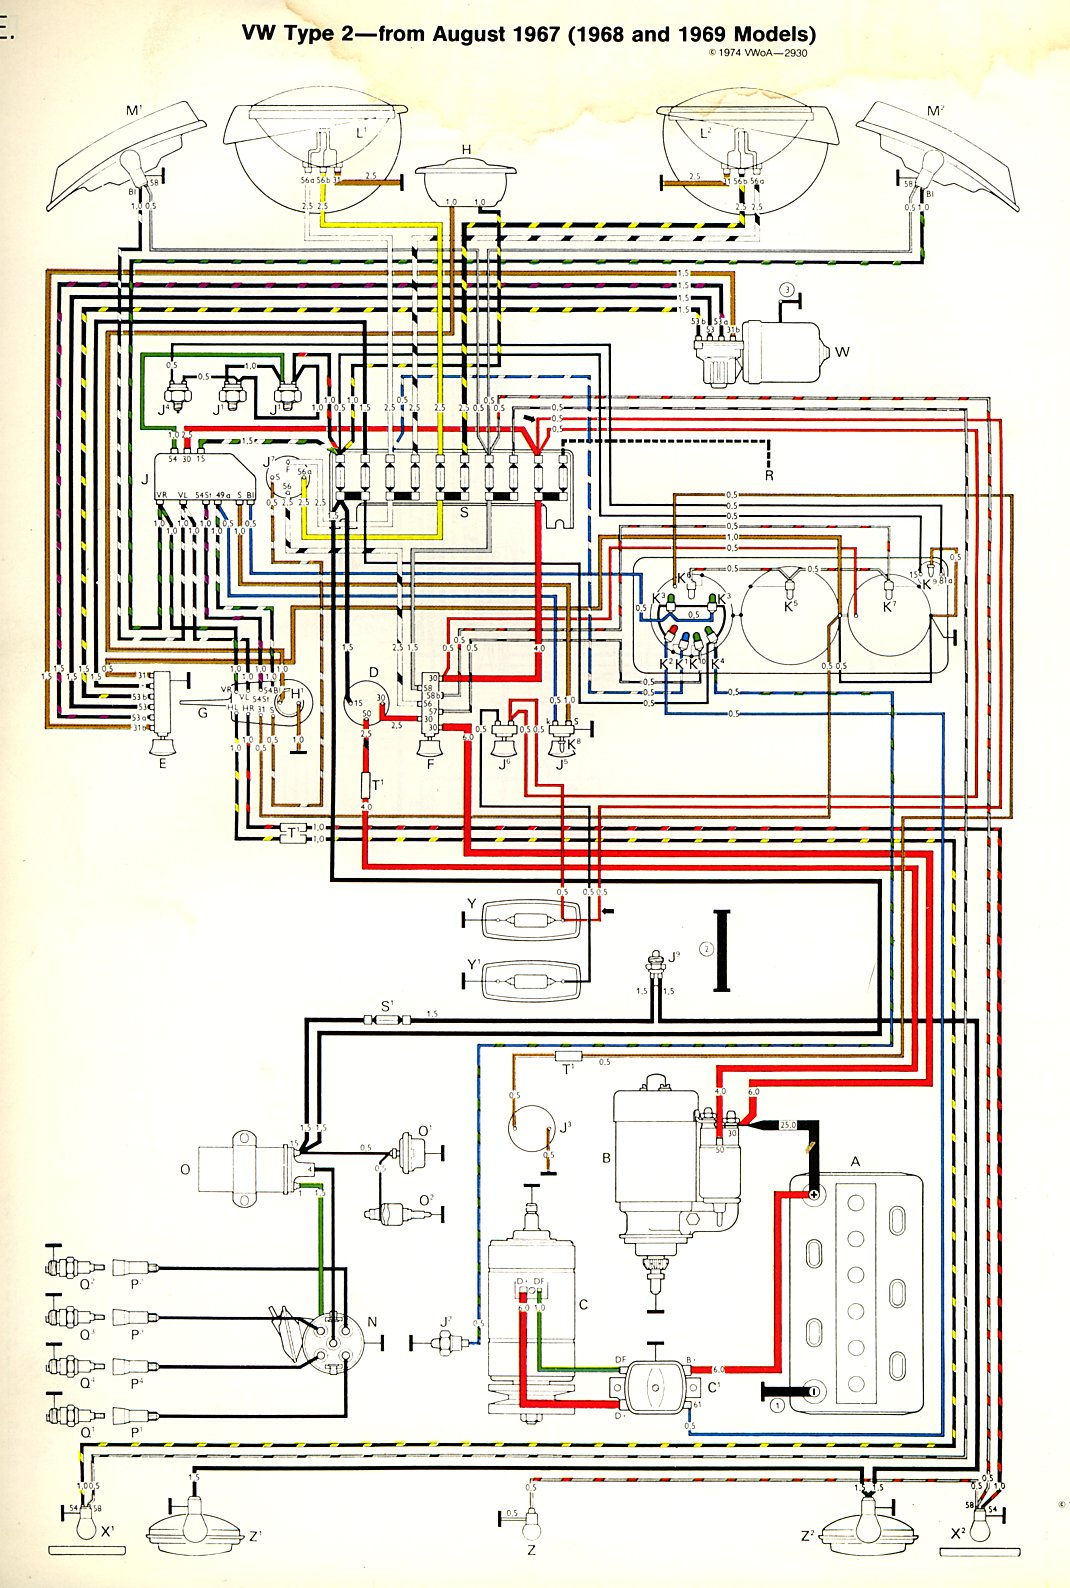 baybus_6869a thesamba com type 2 wiring diagrams vw wiring diagrams at webbmarketing.co